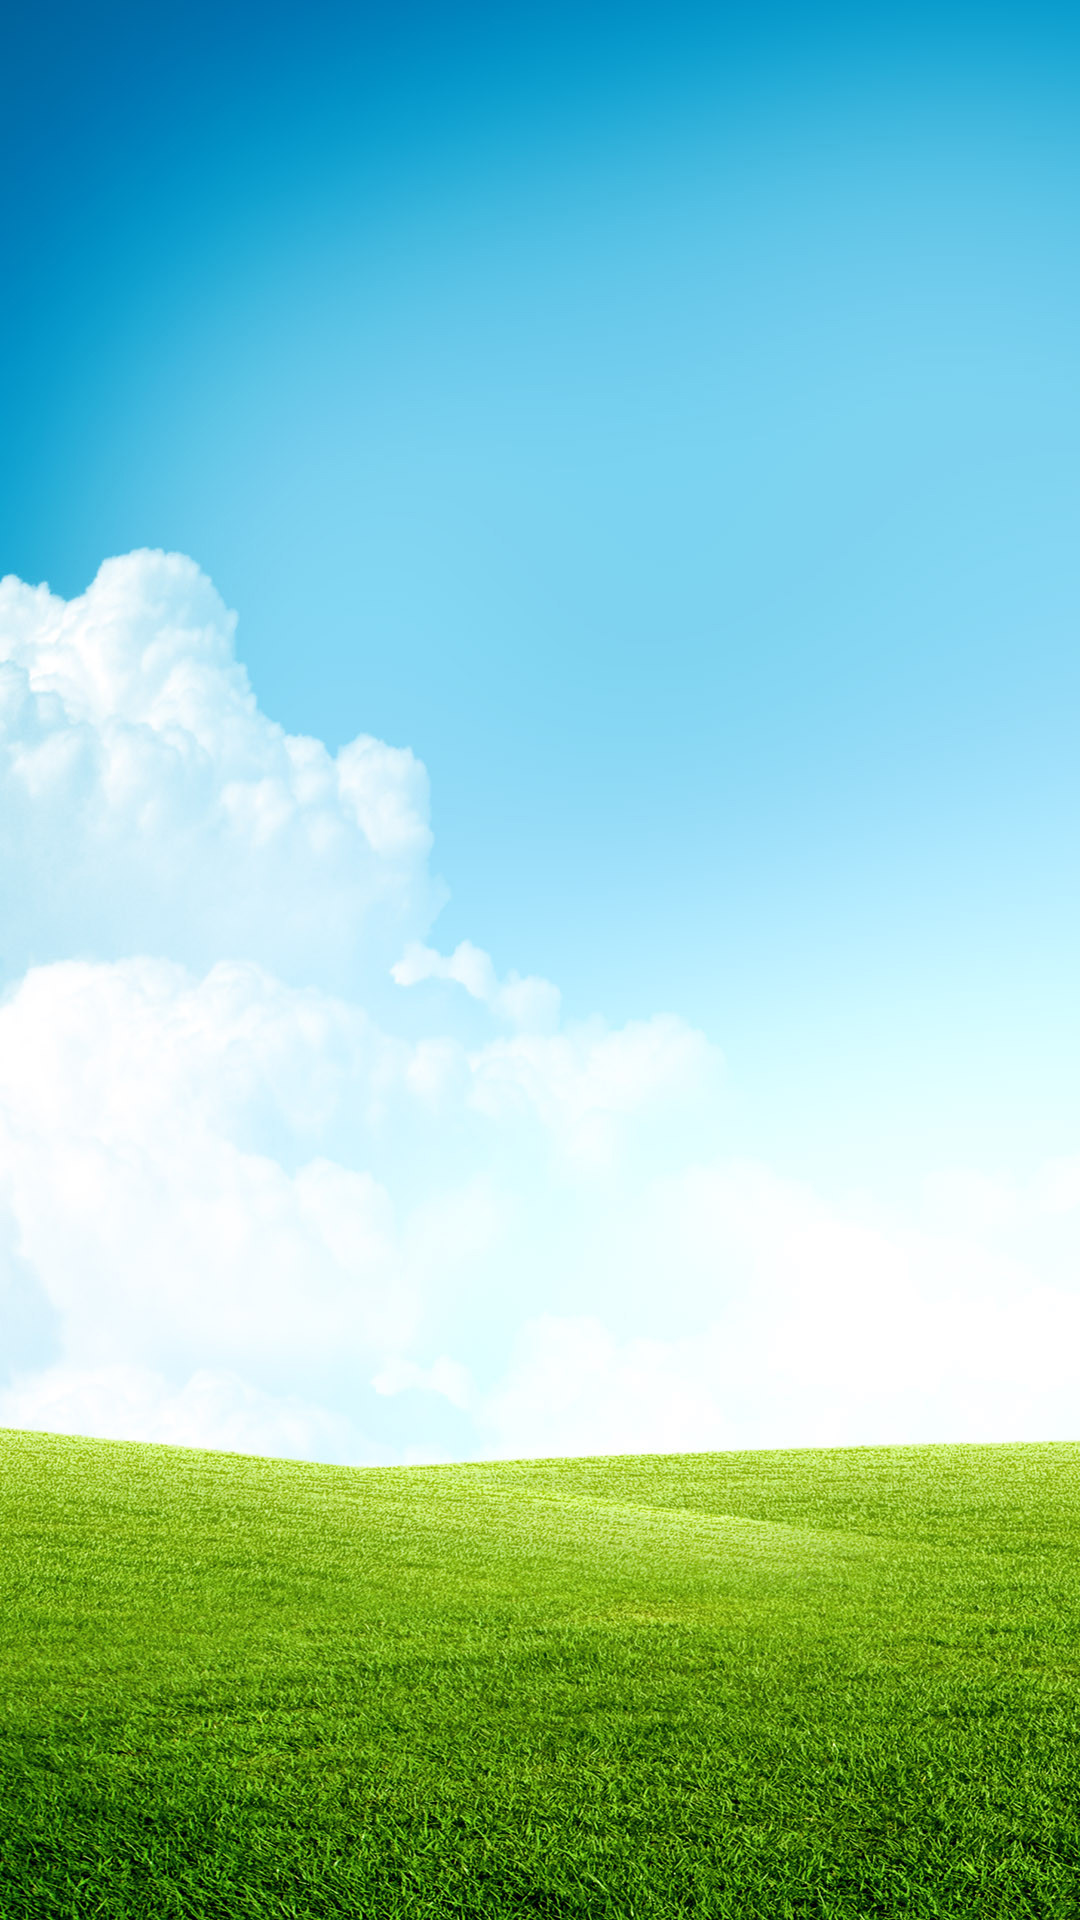 Grass Field Blue Sky Clouds Android Wallpaper …